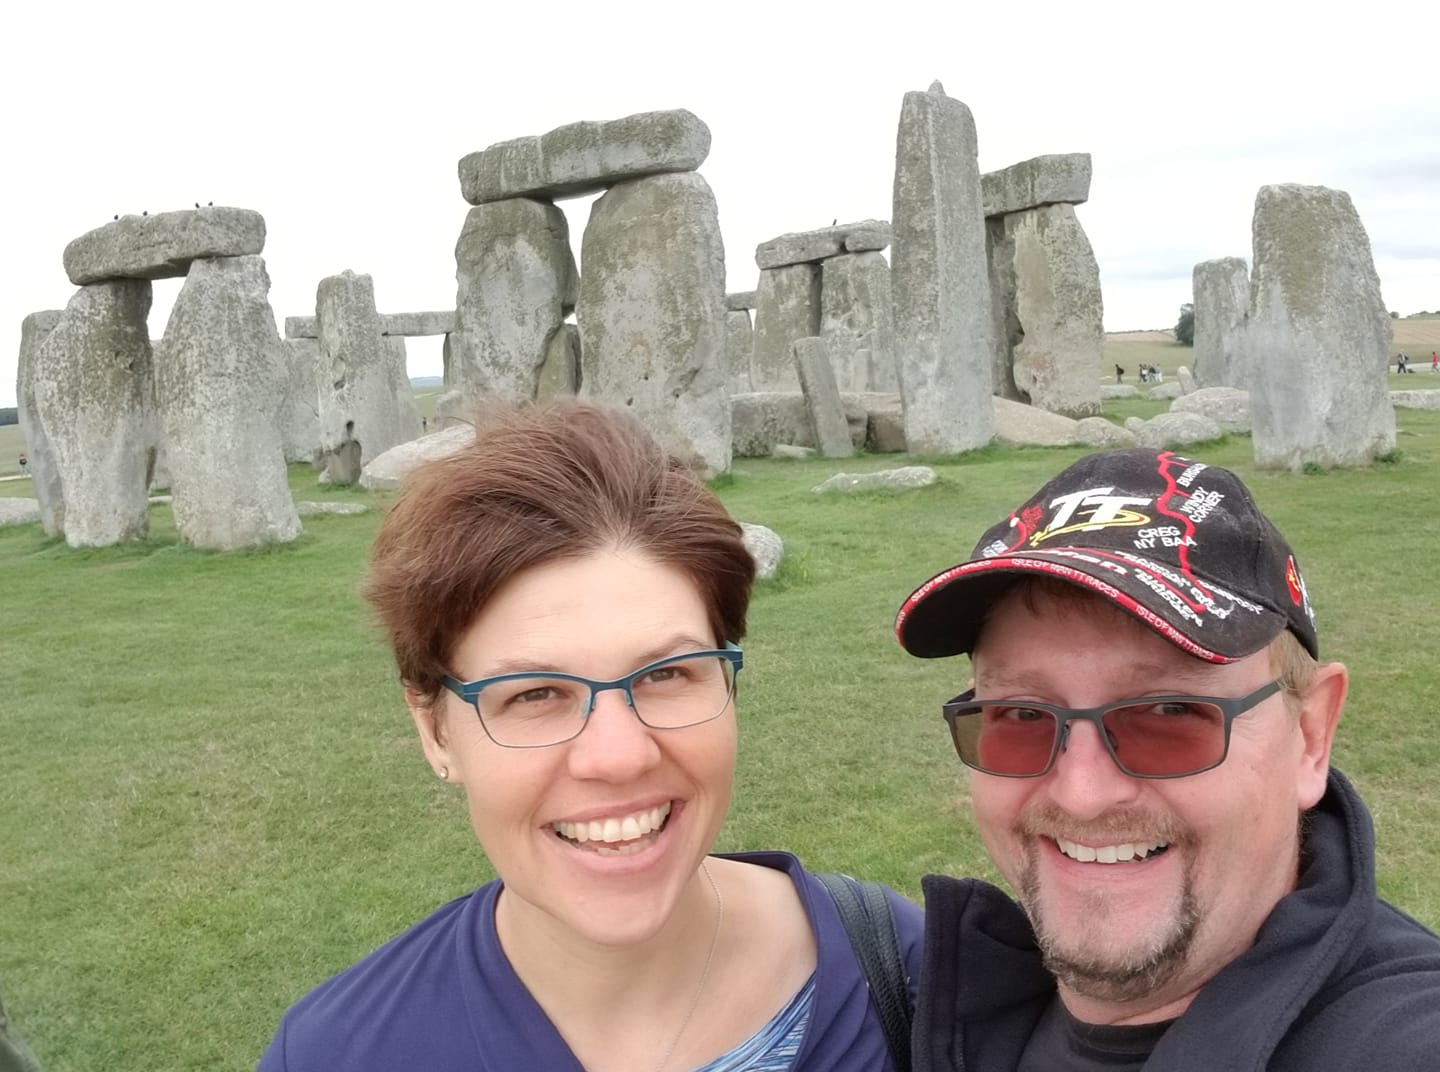 Together at Stonehenge